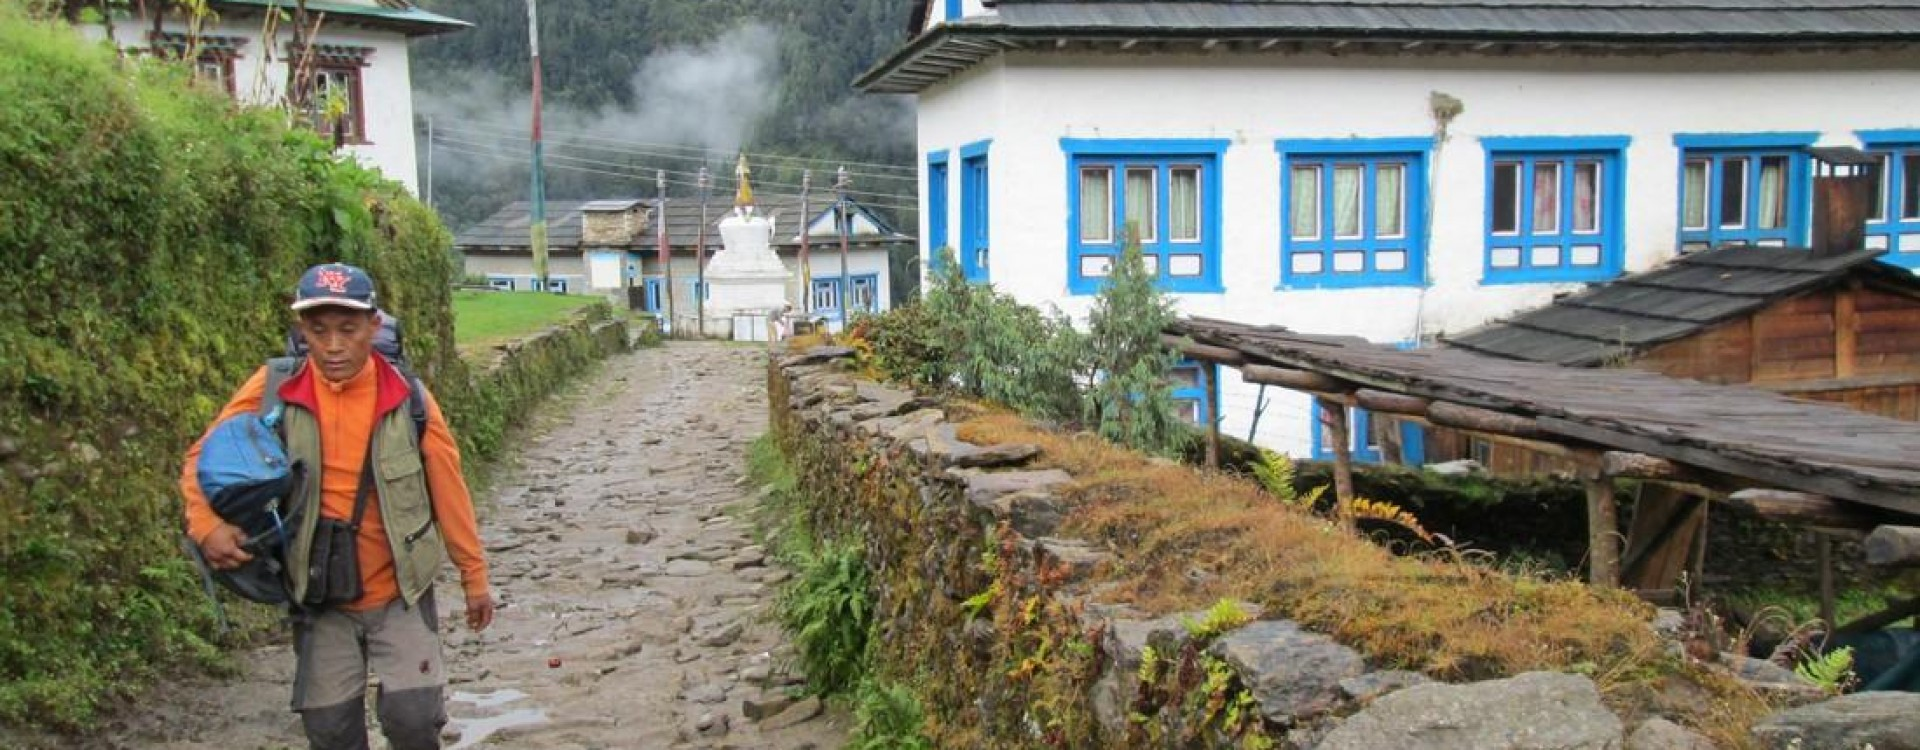 Secrets of the Solu Khumbu